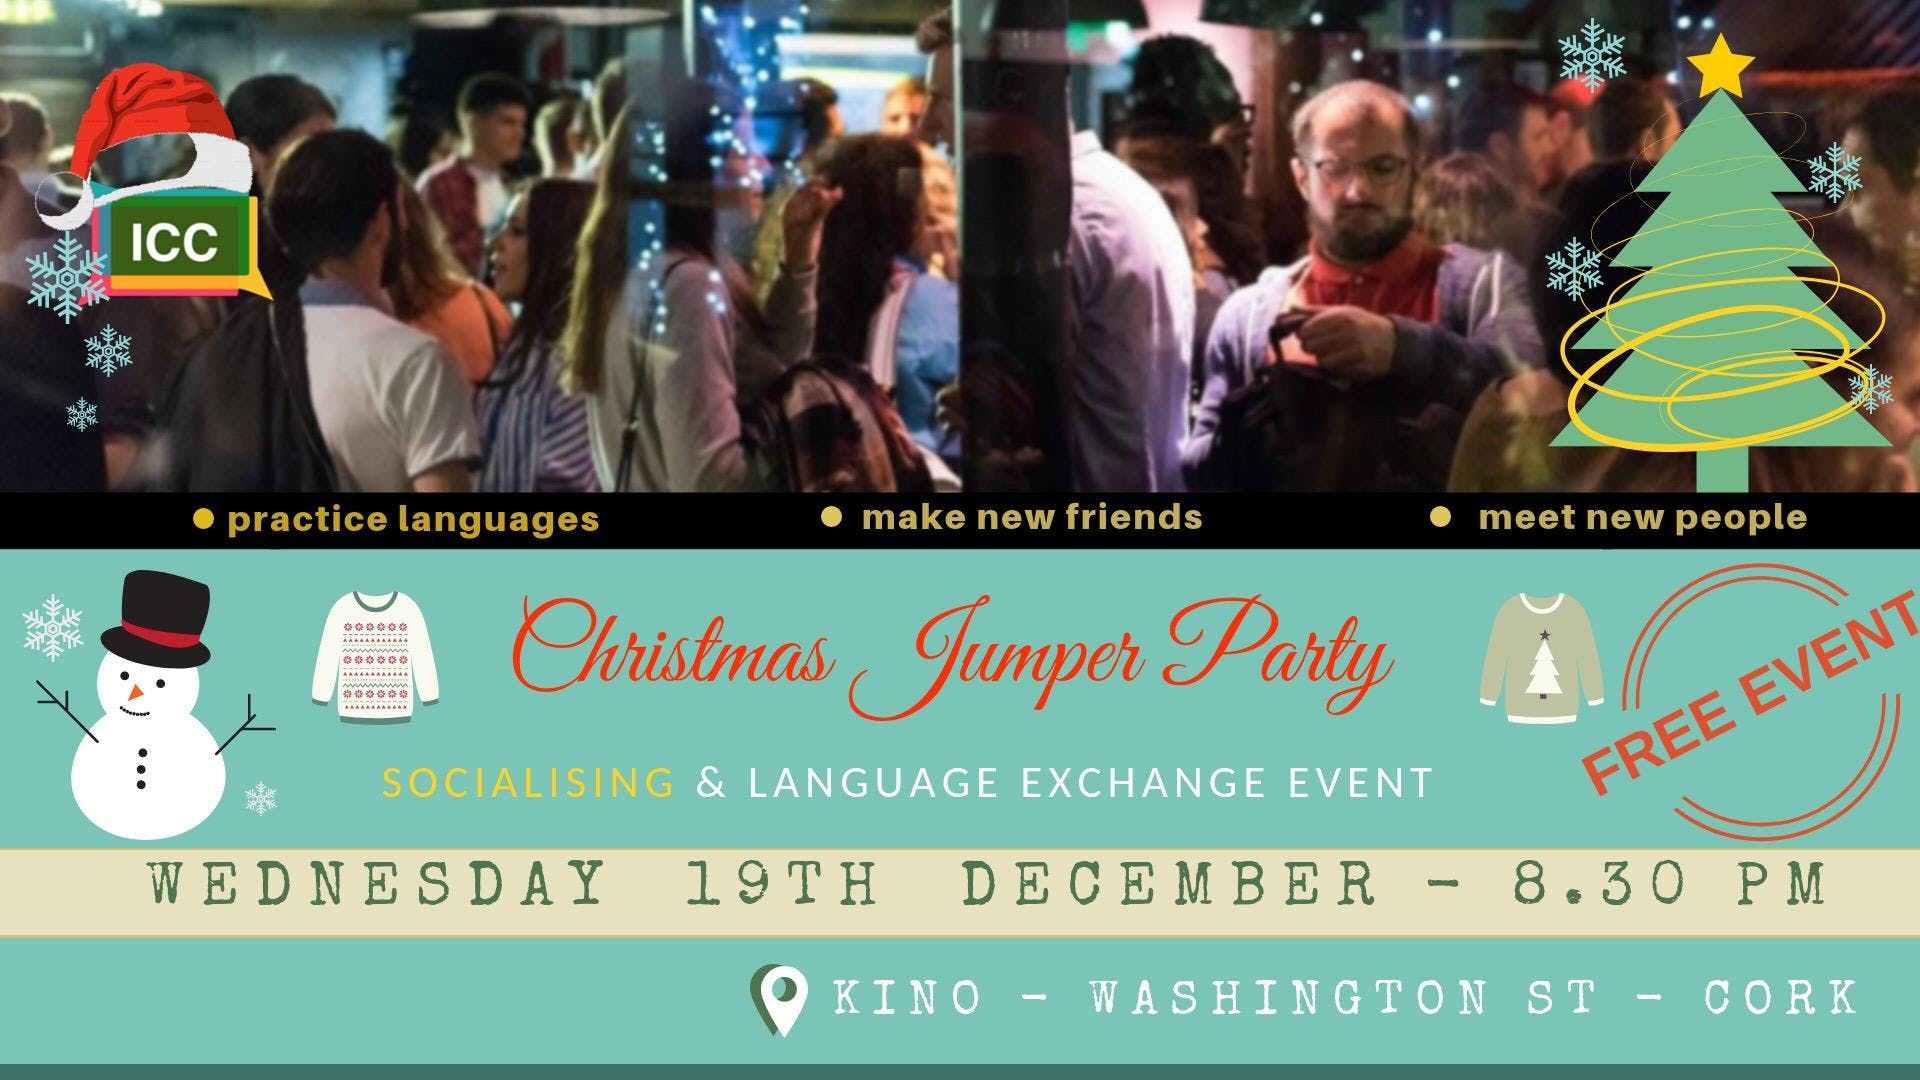 Language Exchange & Socialising Meeting - December 19th